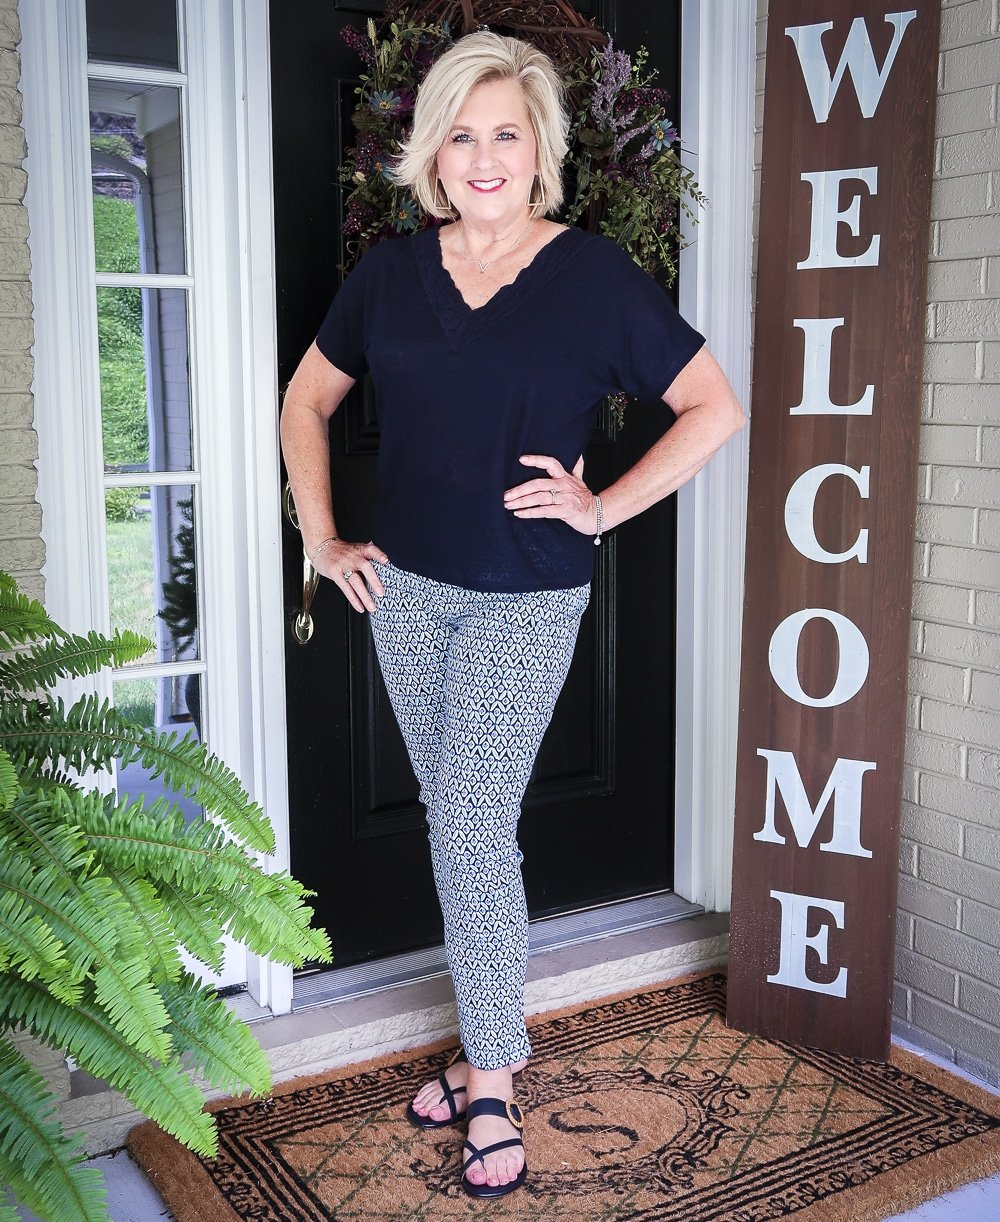 Fashion Blogger 50 Is Not Old wearing a dark navy linen top with a lace neckline and printed ankle pants with navy sandals from Talbots